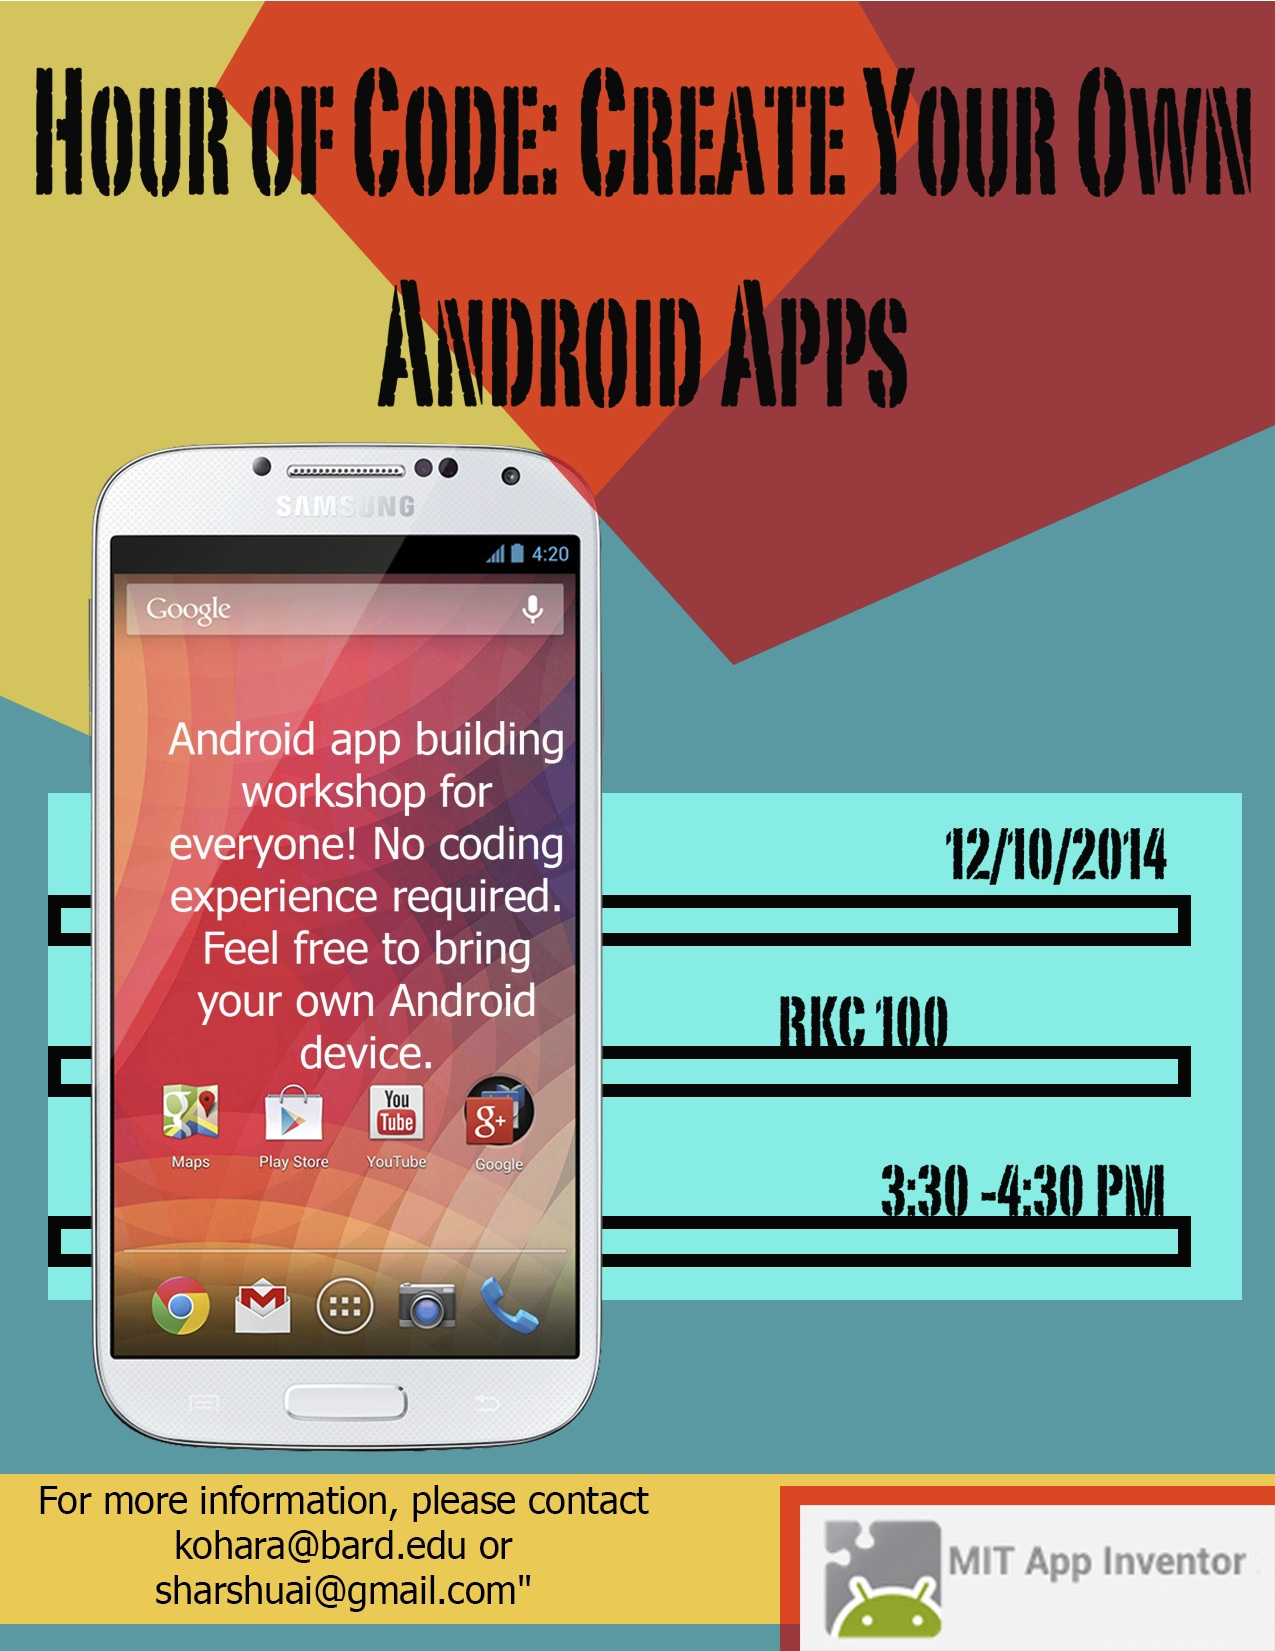 [Hour of Code: Create Your Own Android Apps]